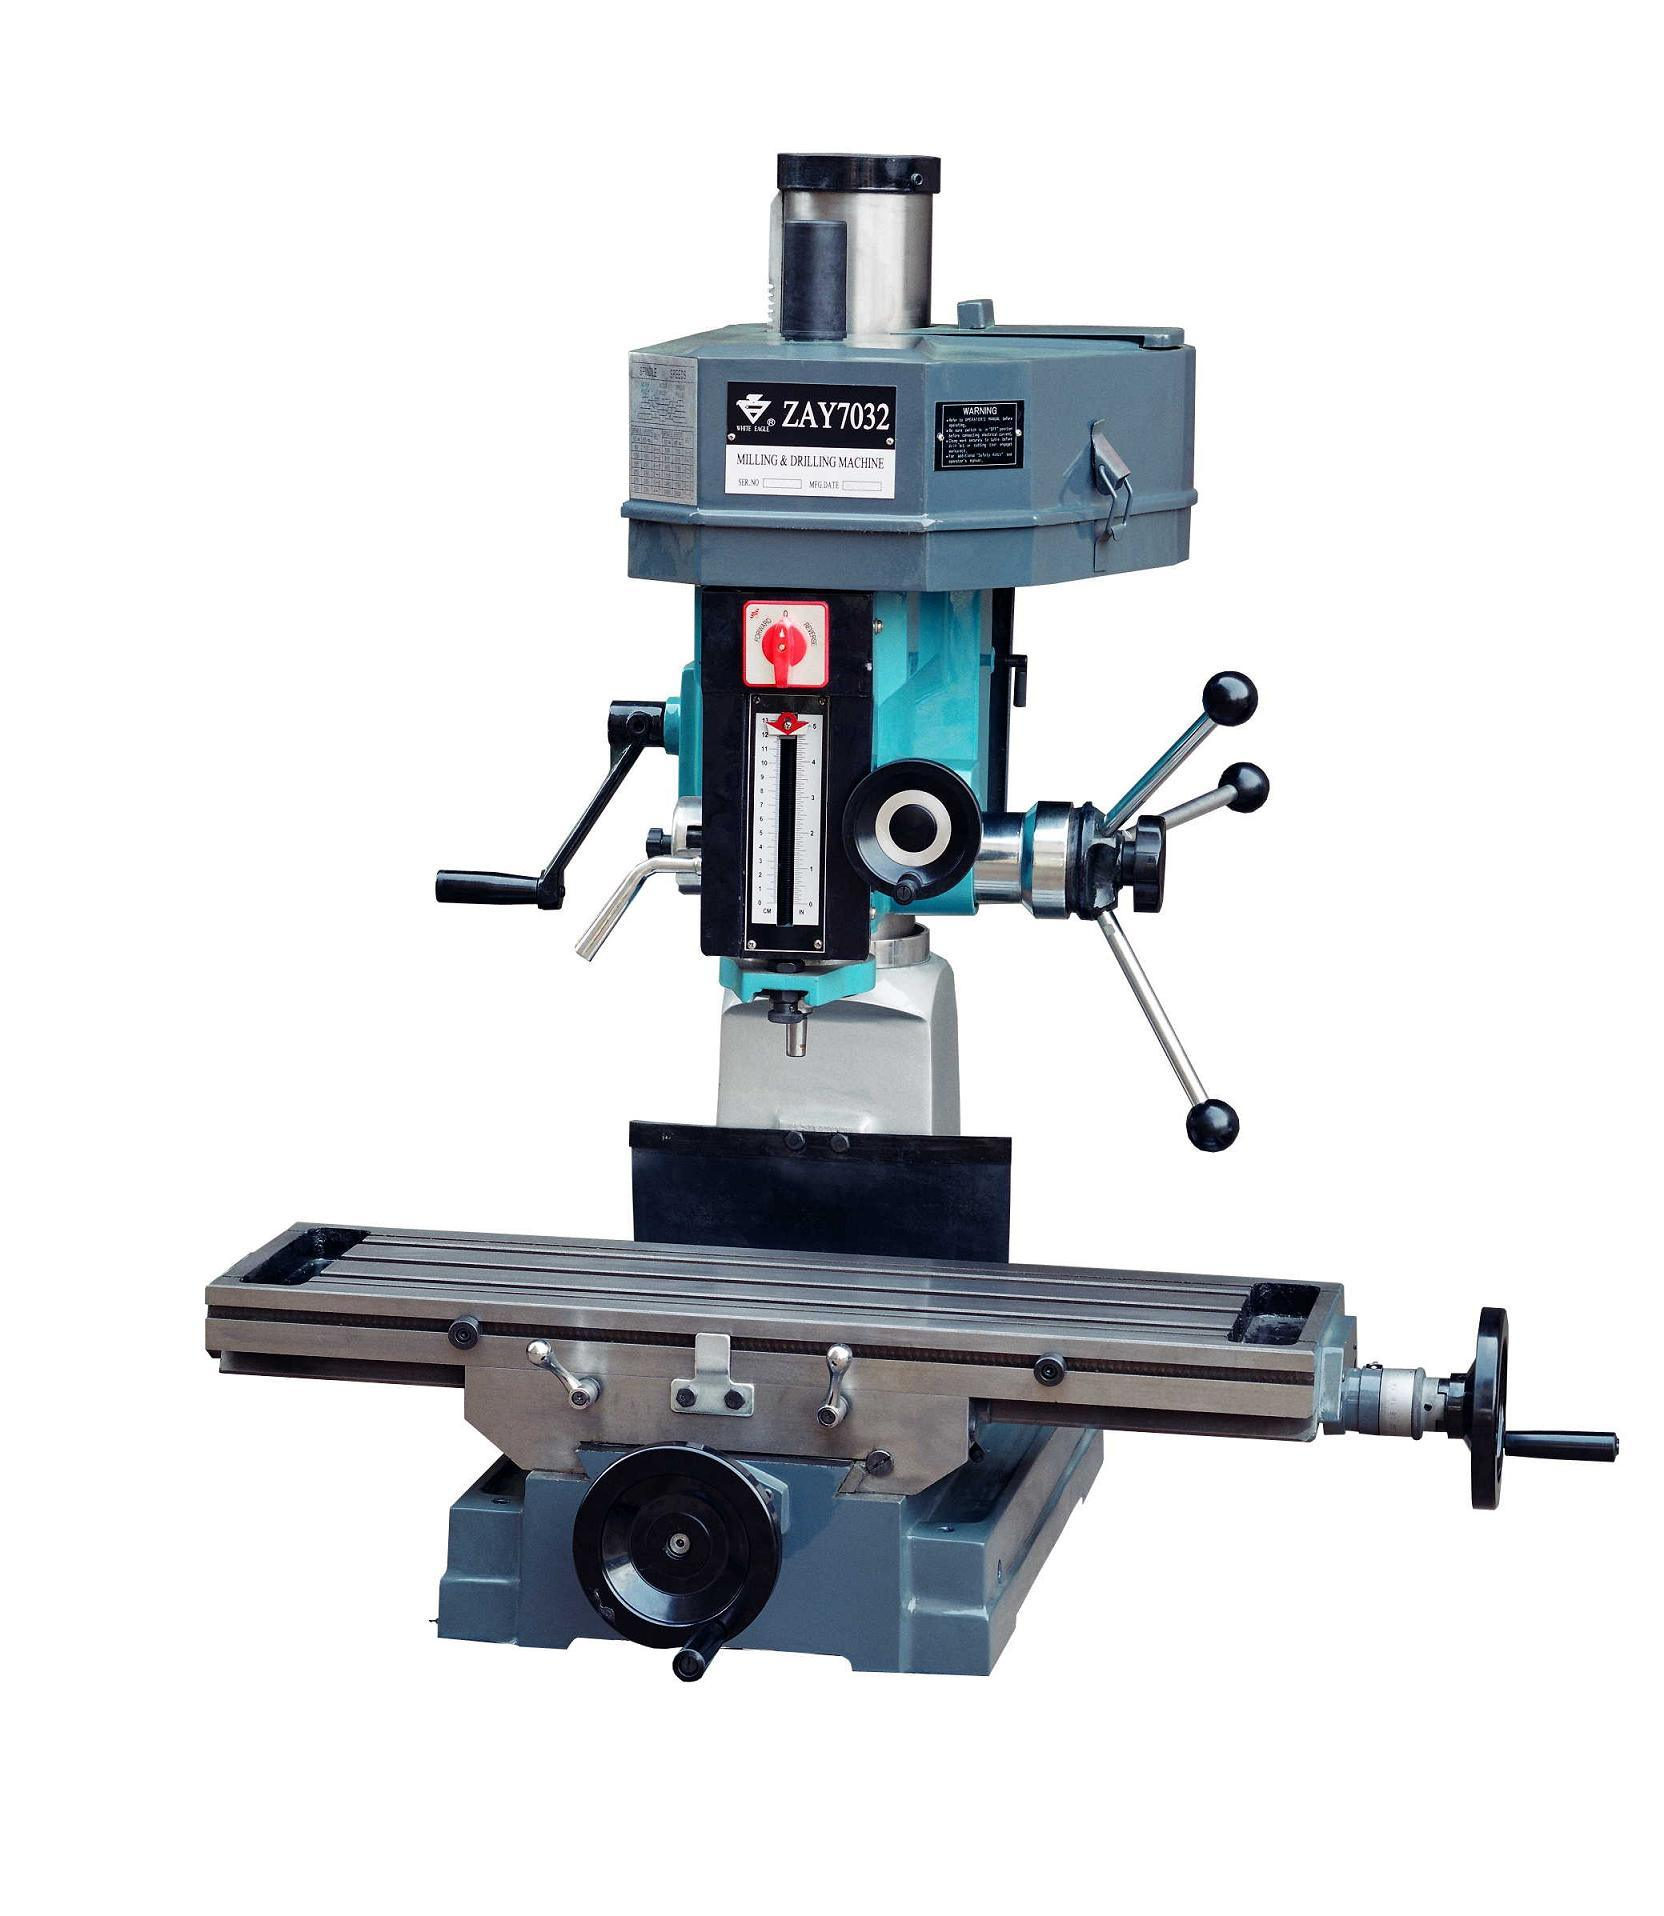 Metal Milling Machines For Sale Http Www Lulusoso Com Products ...